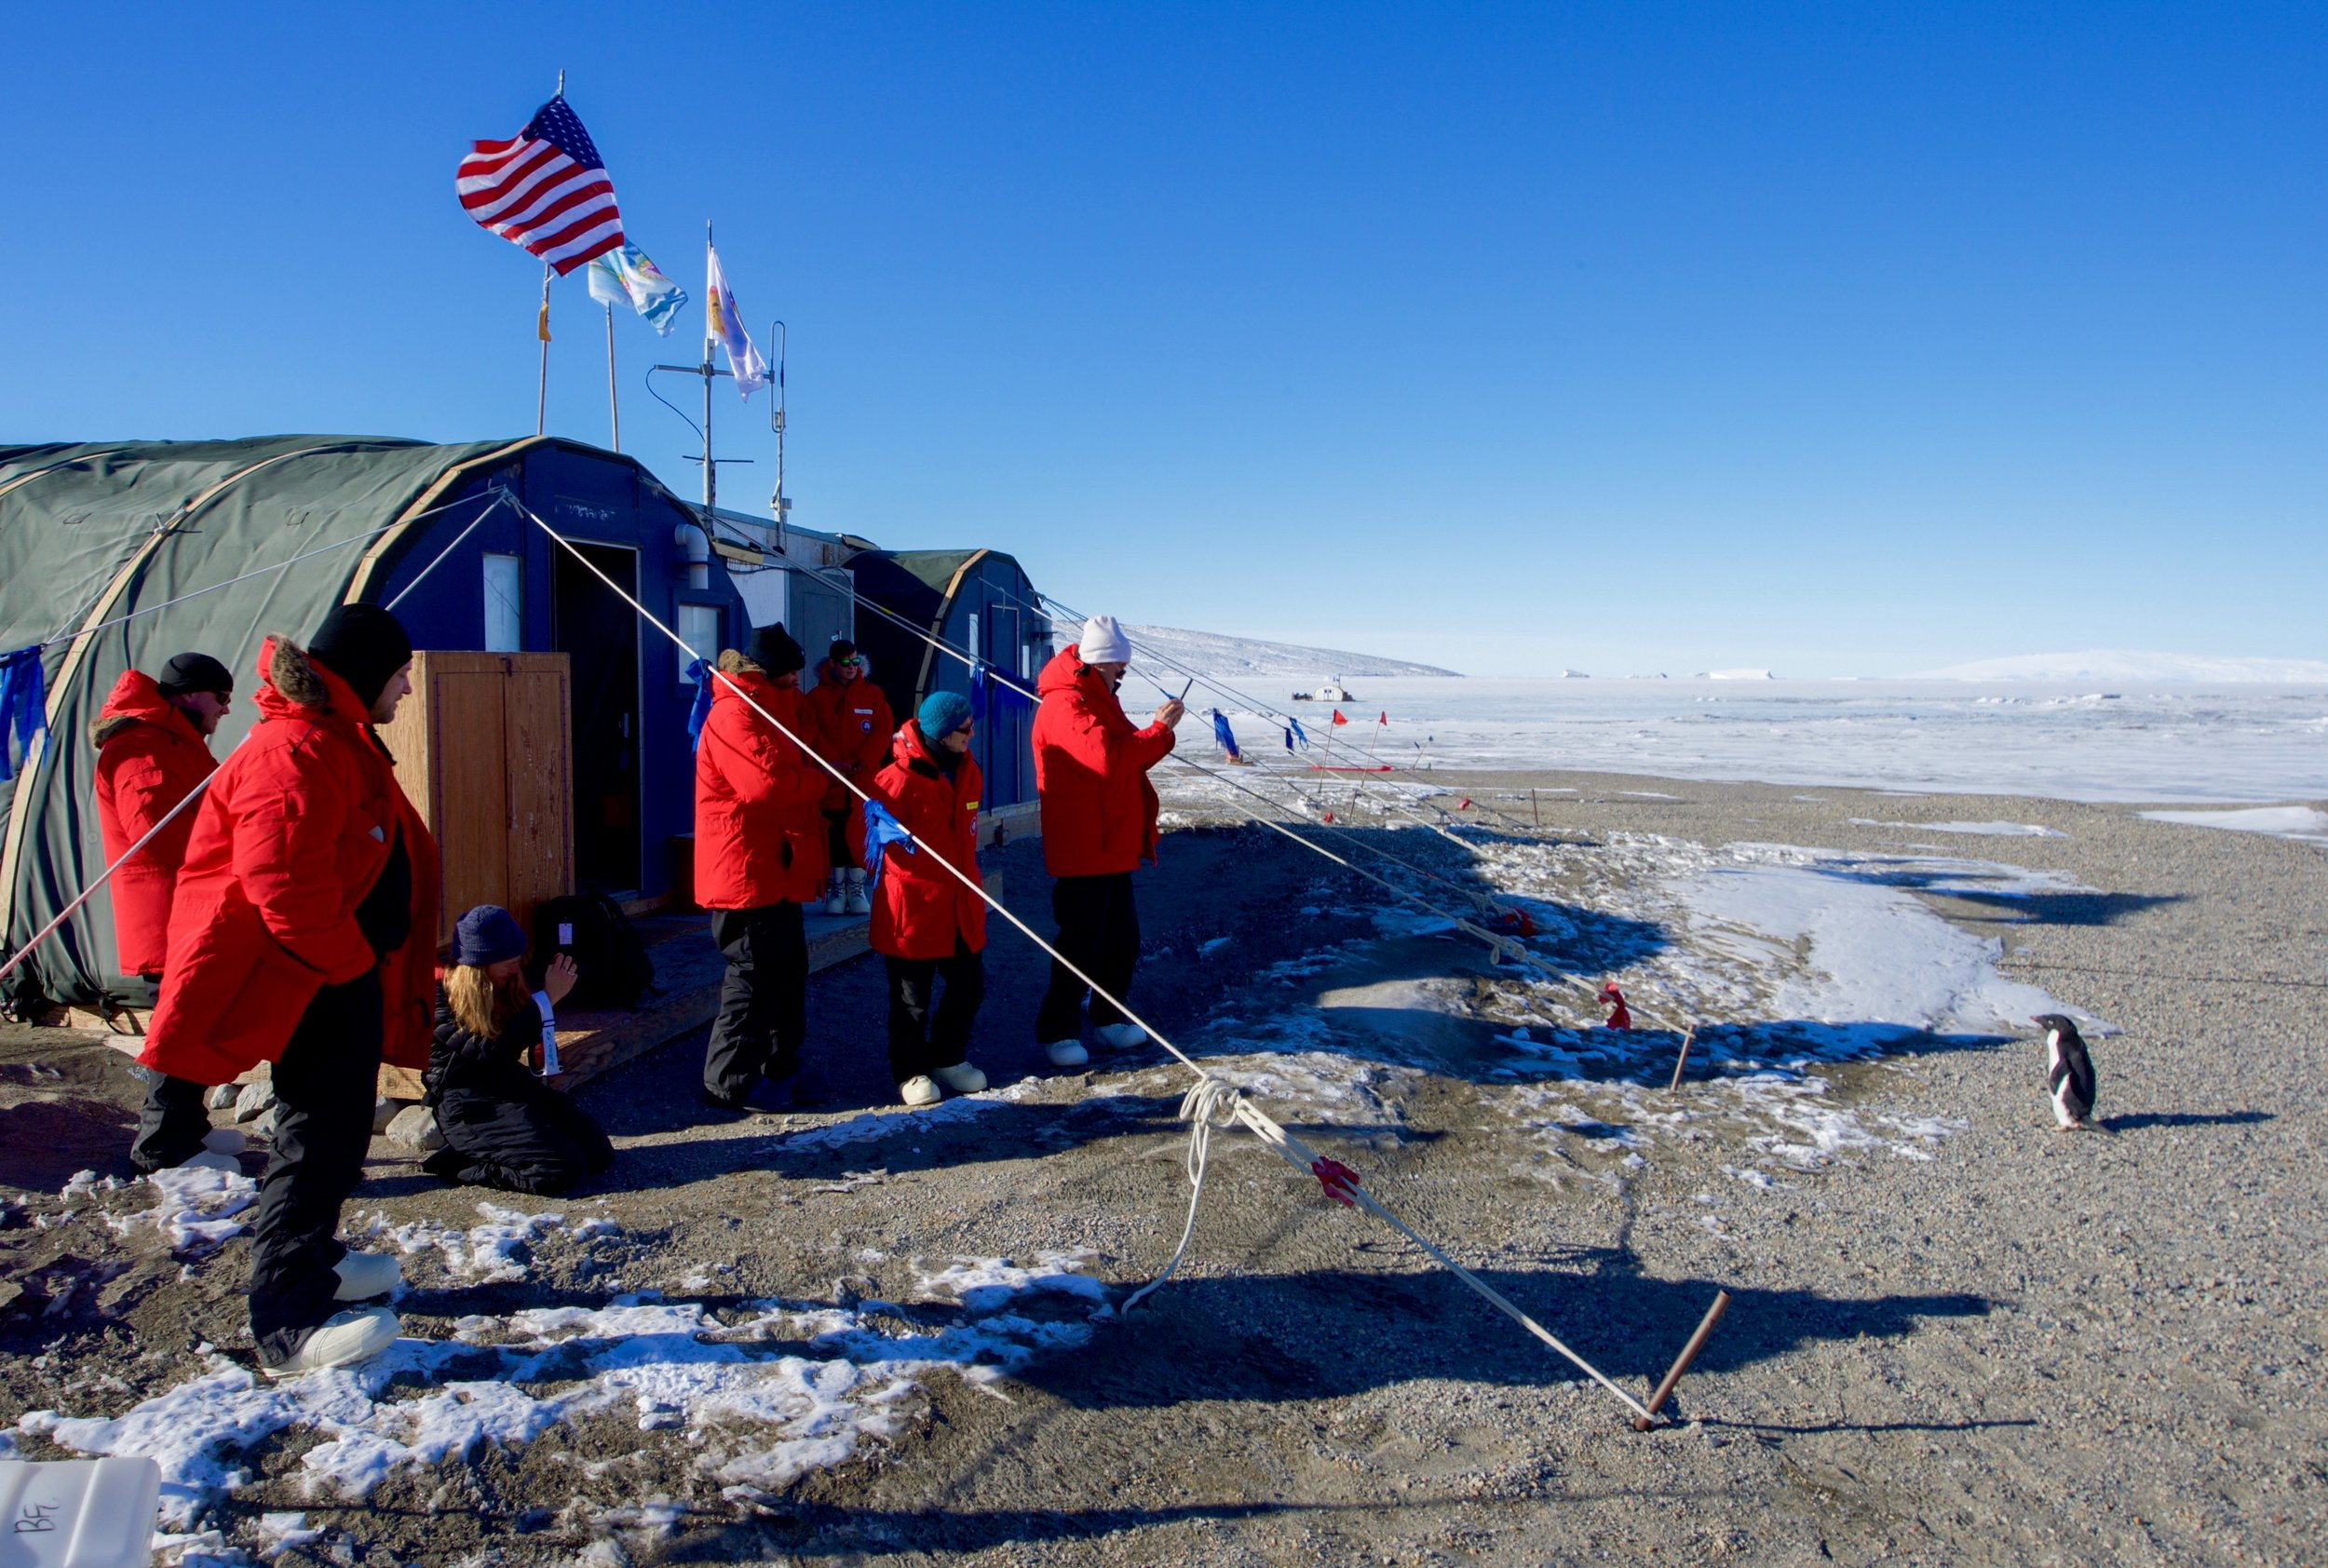 Secretary Kerry and his entourage wait for a penguin to approach them during their tour of Antarctica.